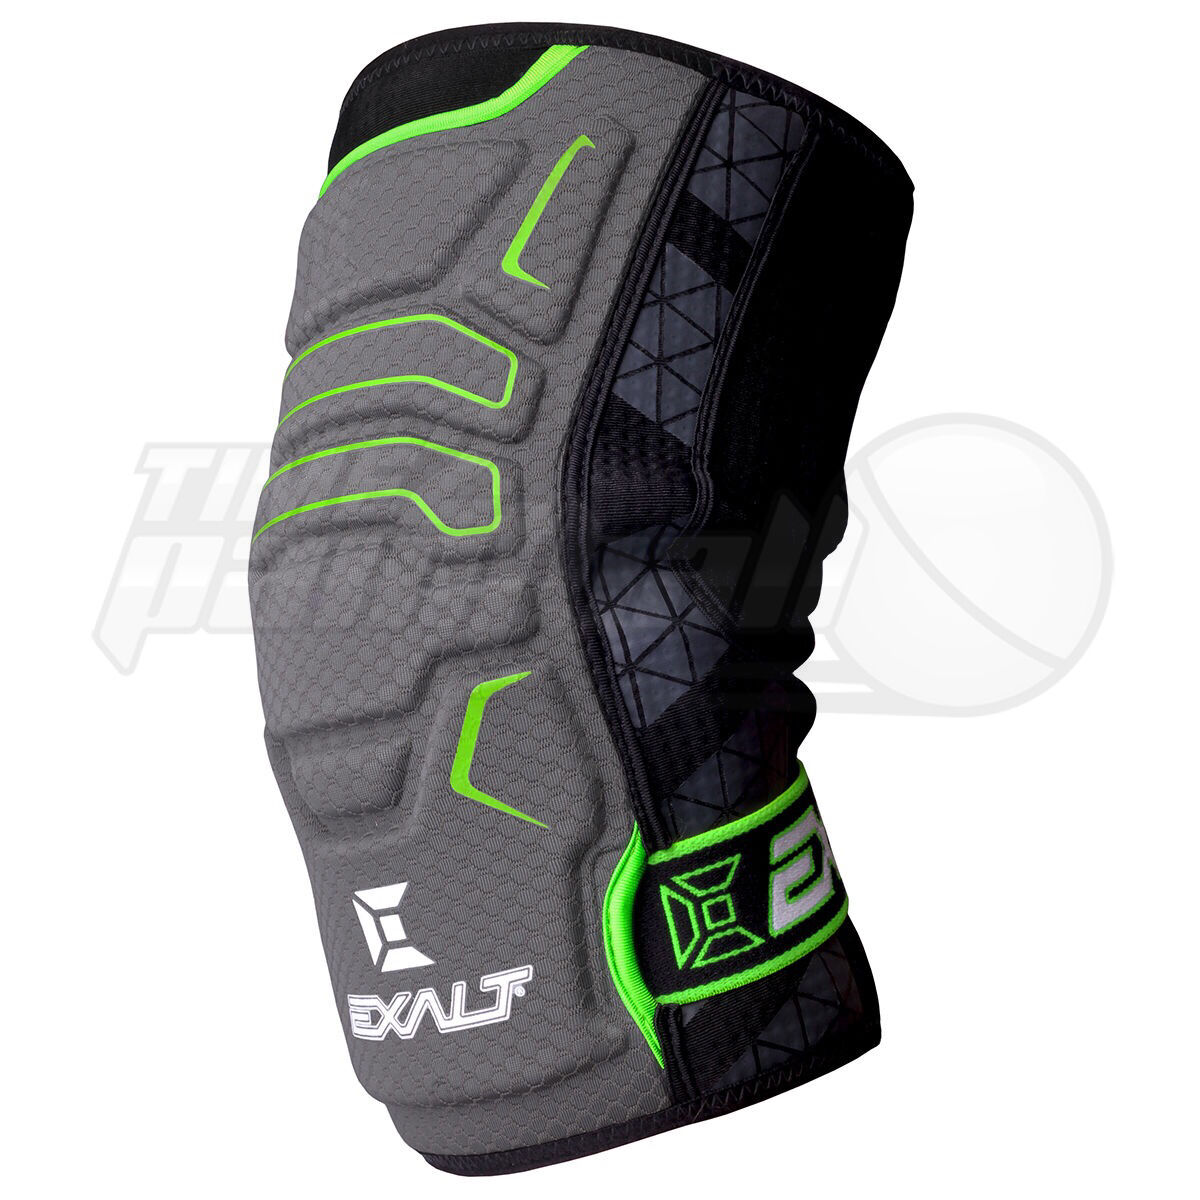 Exalt Freeflex Knee Pads - Small FREE SHIPPING Paintball Pad Predection